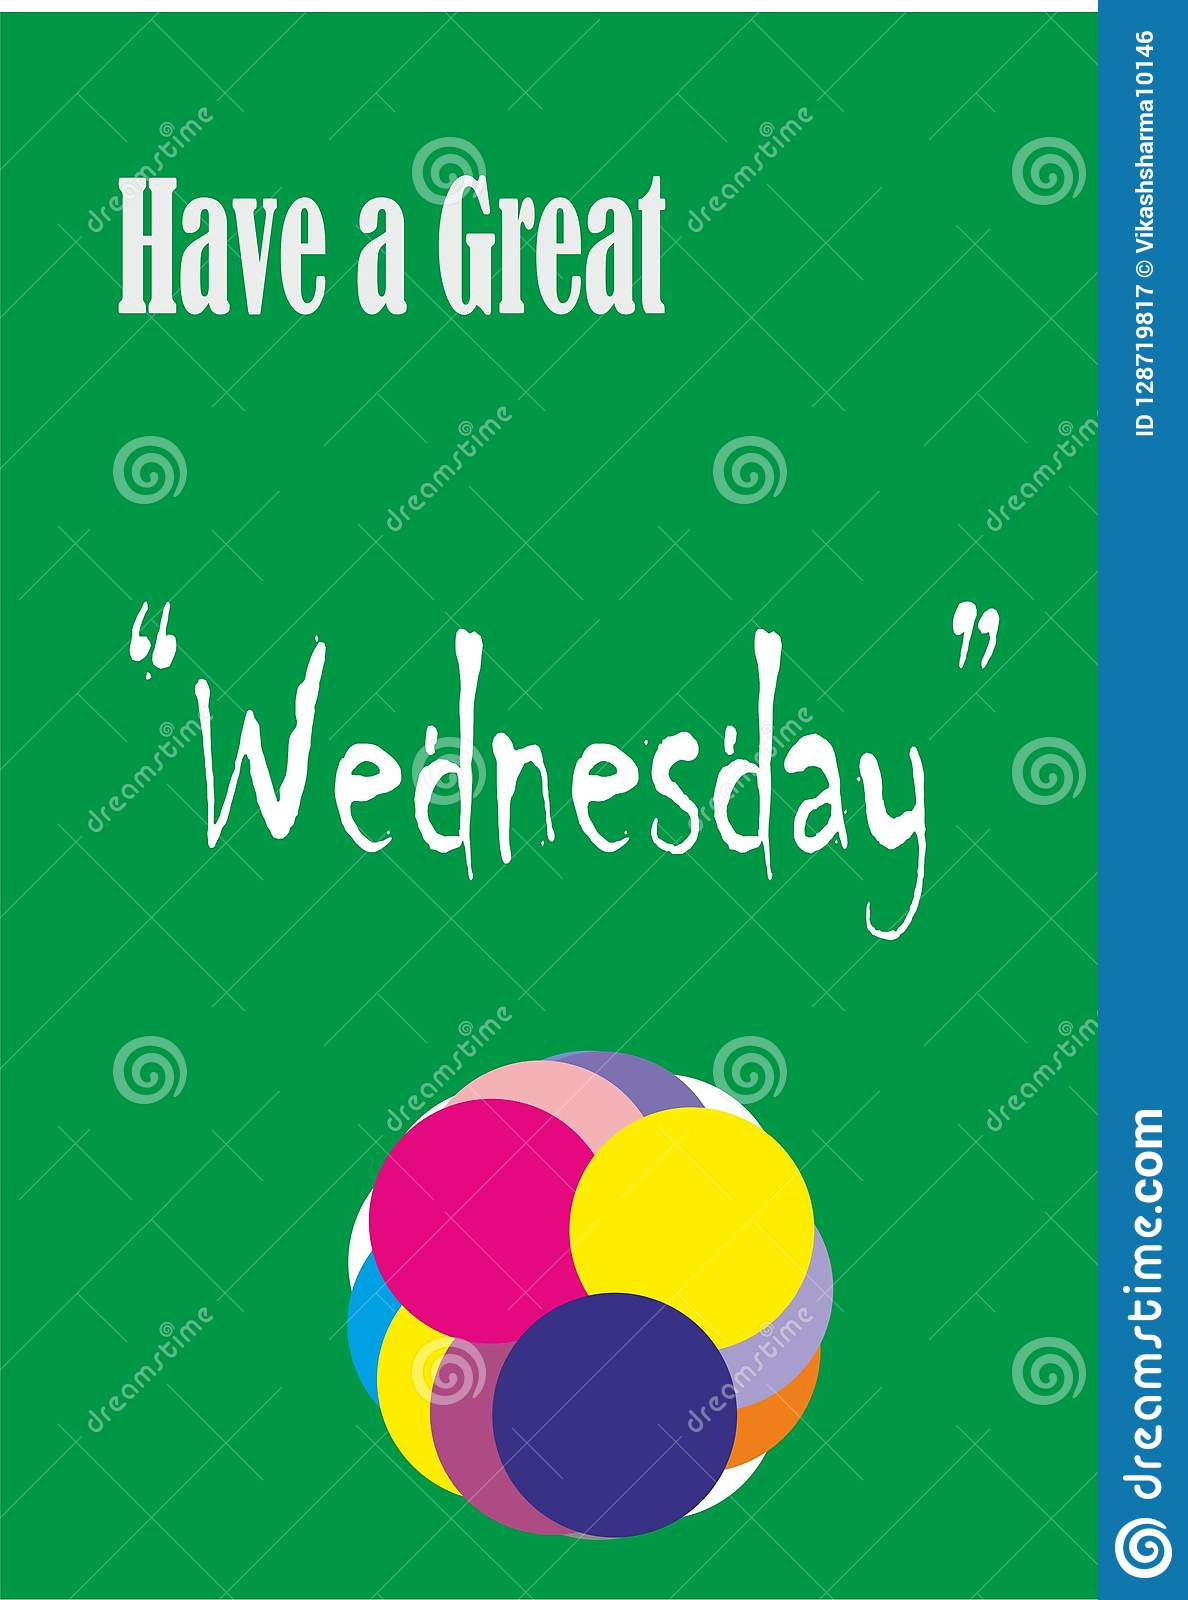 Design Daywise Wishes Quotes Have A Great Wednesday Stock